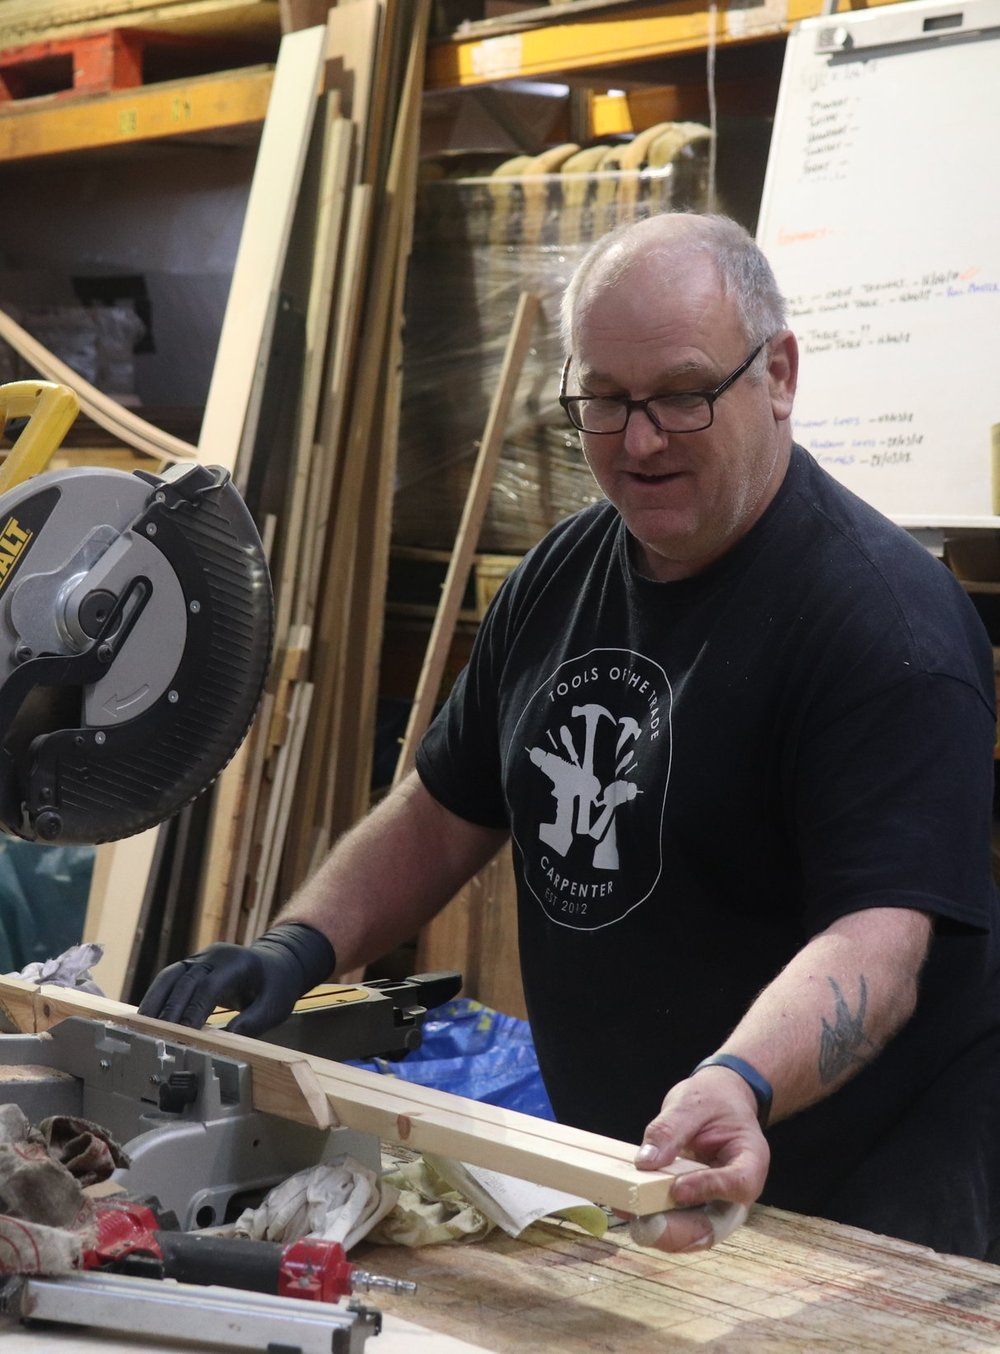 Andy Dunham - Andy Dunham works with Ollie and has been influential in various projects for the past 6 years. Andy has a wealth of engineering and fabrication knowledge and trained as an Engineer in the 1980's in and around Sheffield and South Yorkshire.Andy also studied at Sheffield Hallam University and has a degree in Metalwork and Jewellery.Andy's passion is most definitely making, he is happiest with a tool in hand and something to get stuck in to, along with a good cup of Tea.Andy's skill set is a vital component in the delivery of our projects and He continues to innovate how we use the workshop and the tools within it.